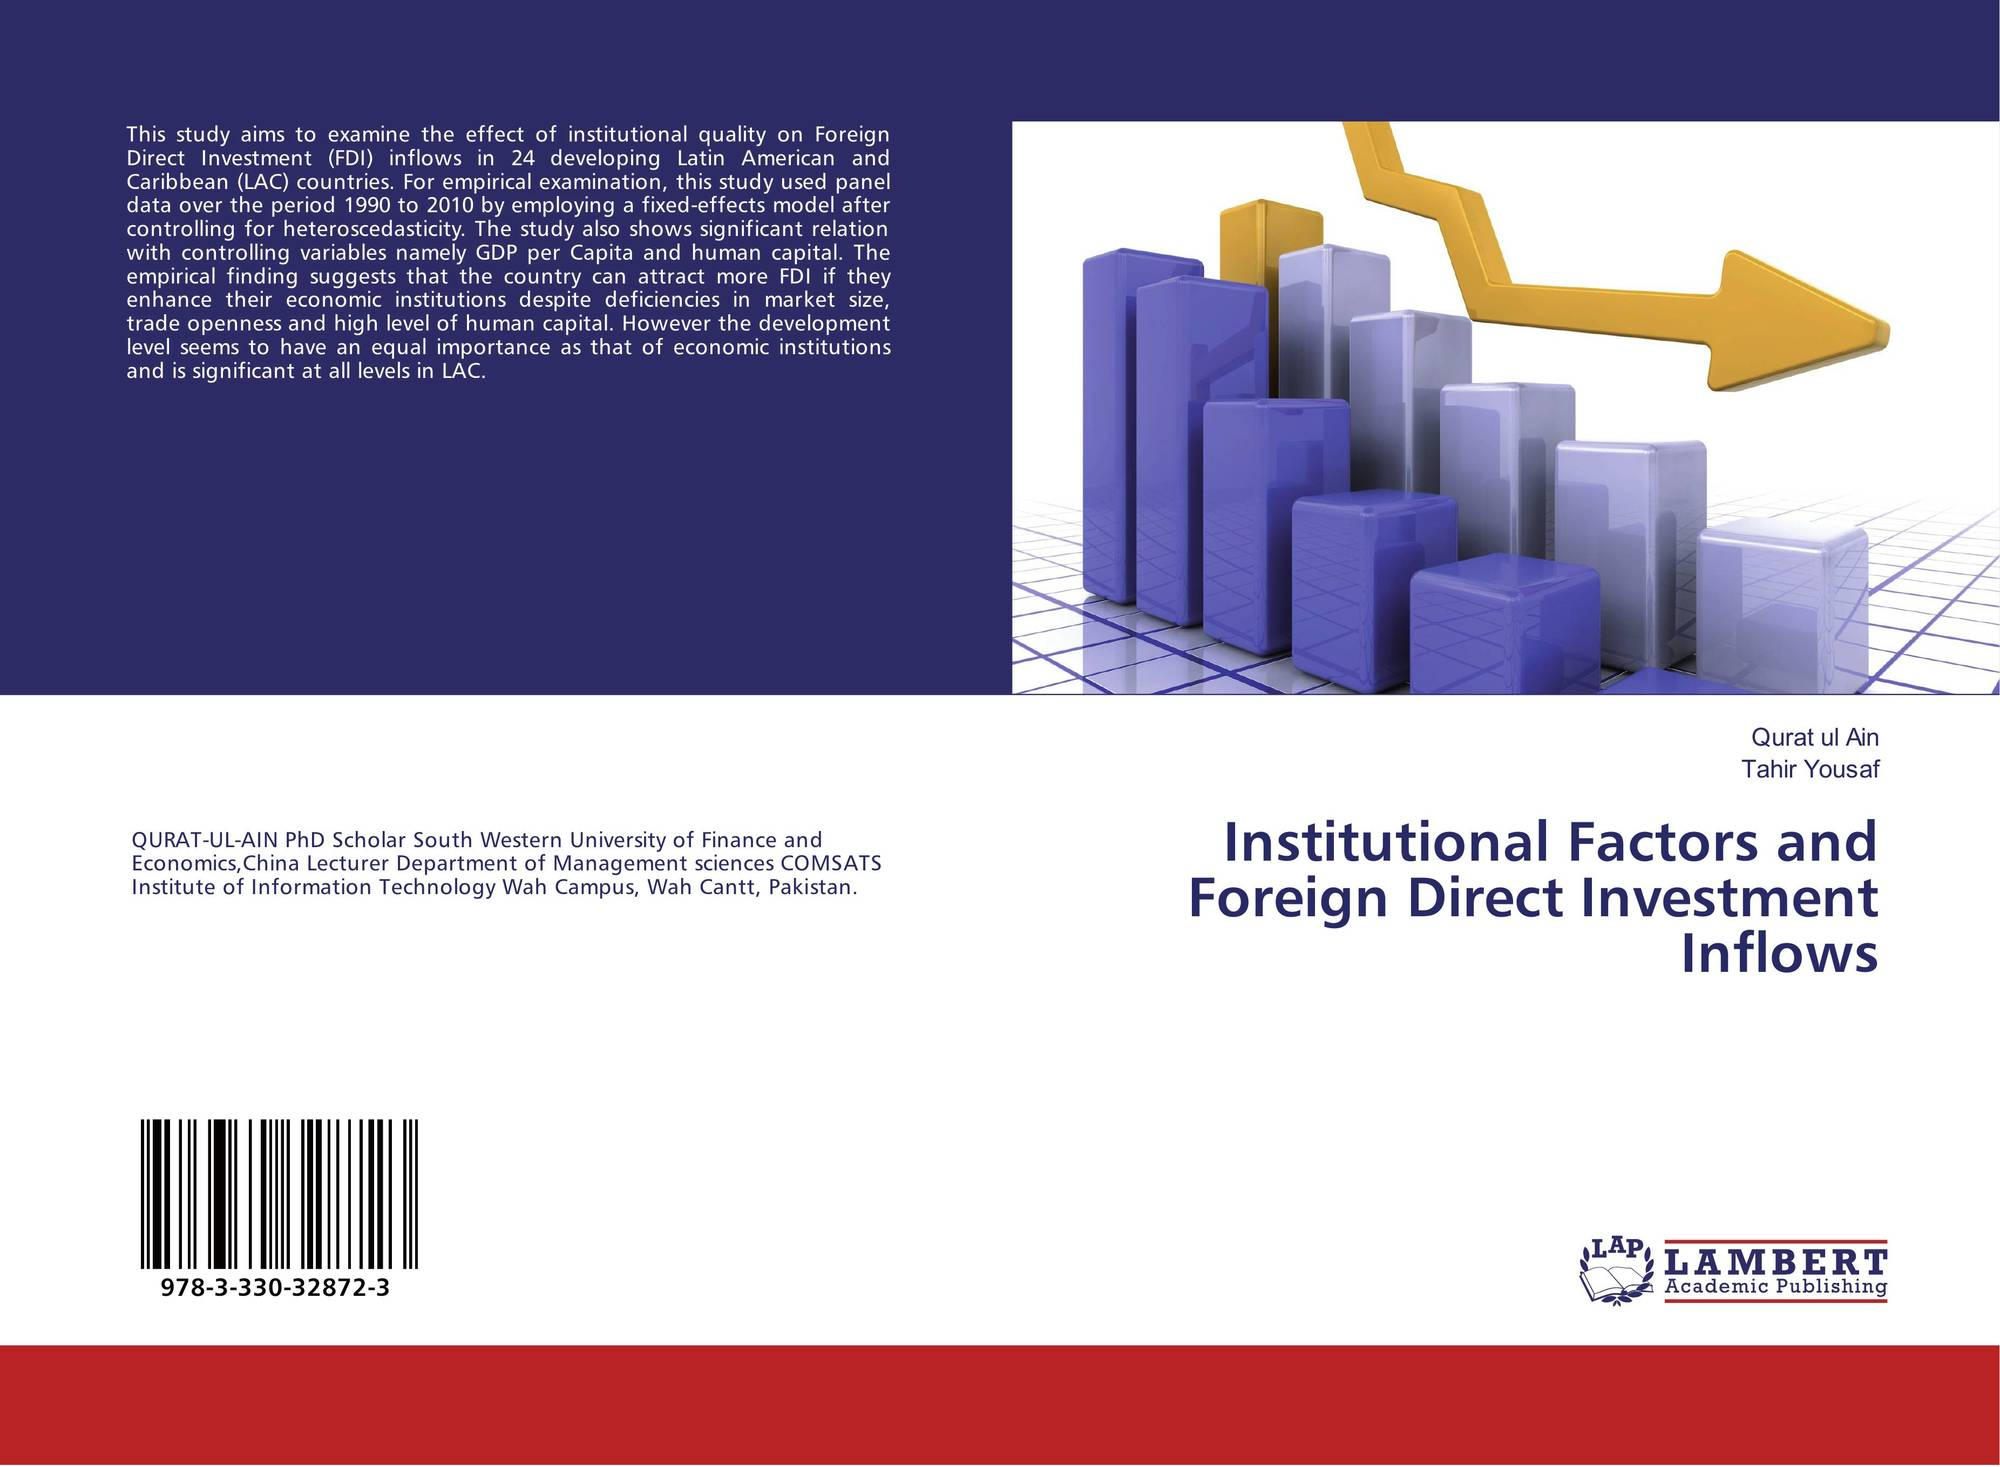 an overview of factors that promote foreign direct investment Factors influencing foreign direct investment inflow in tanzania fdi is a mechanism by which to promote industries in which they have a potential comparative.